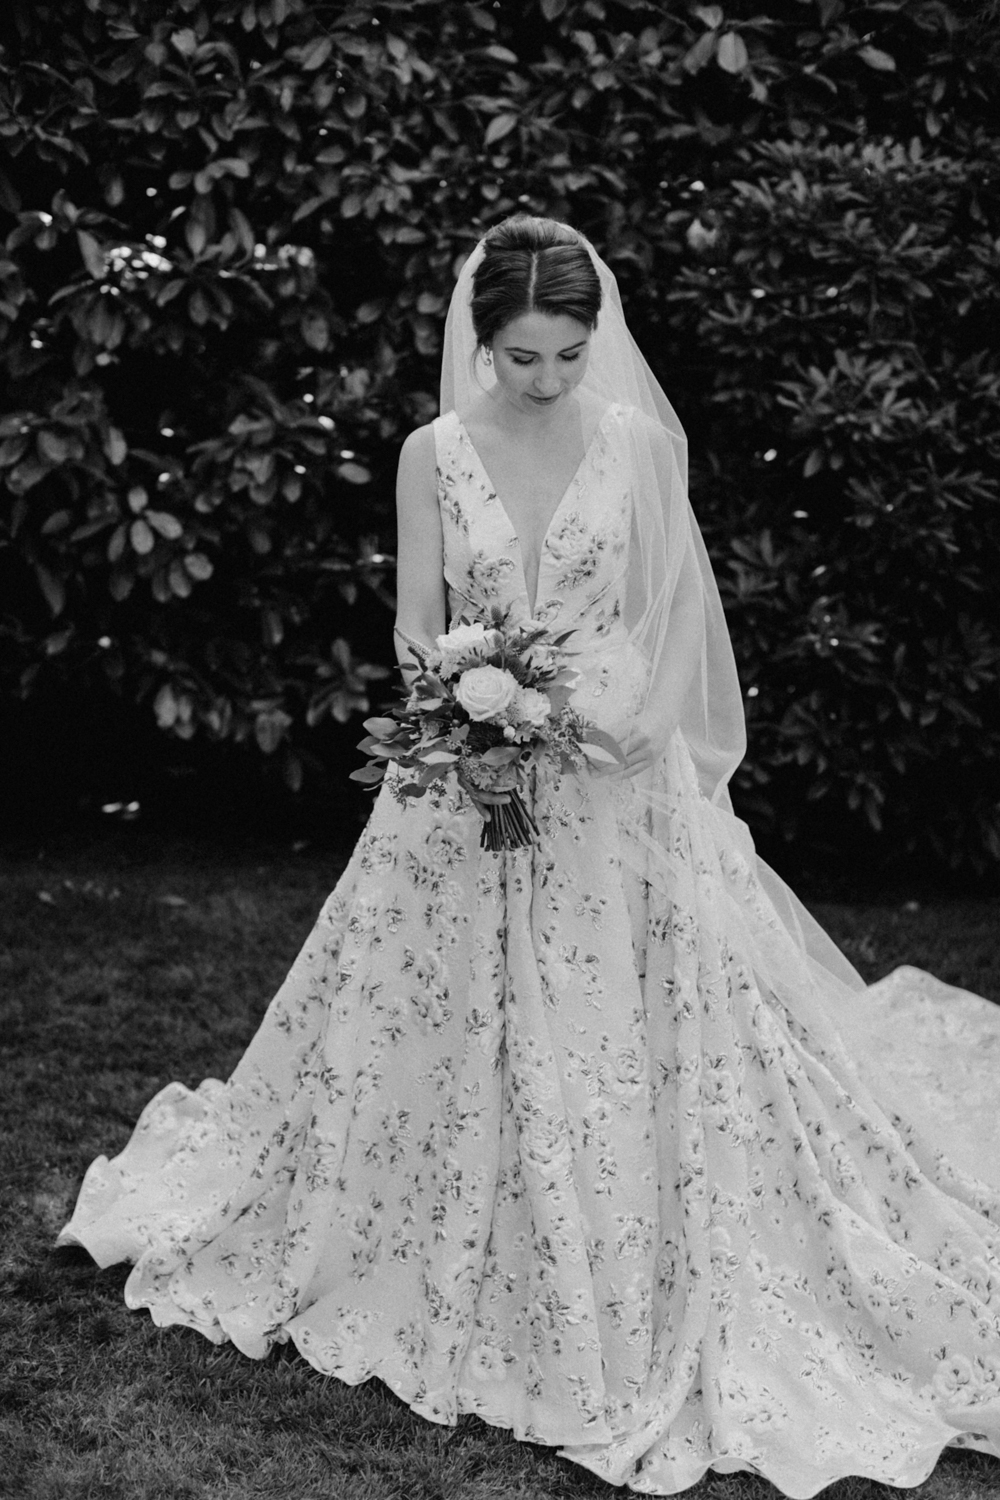 Bride with beautiful dress holding bouquet